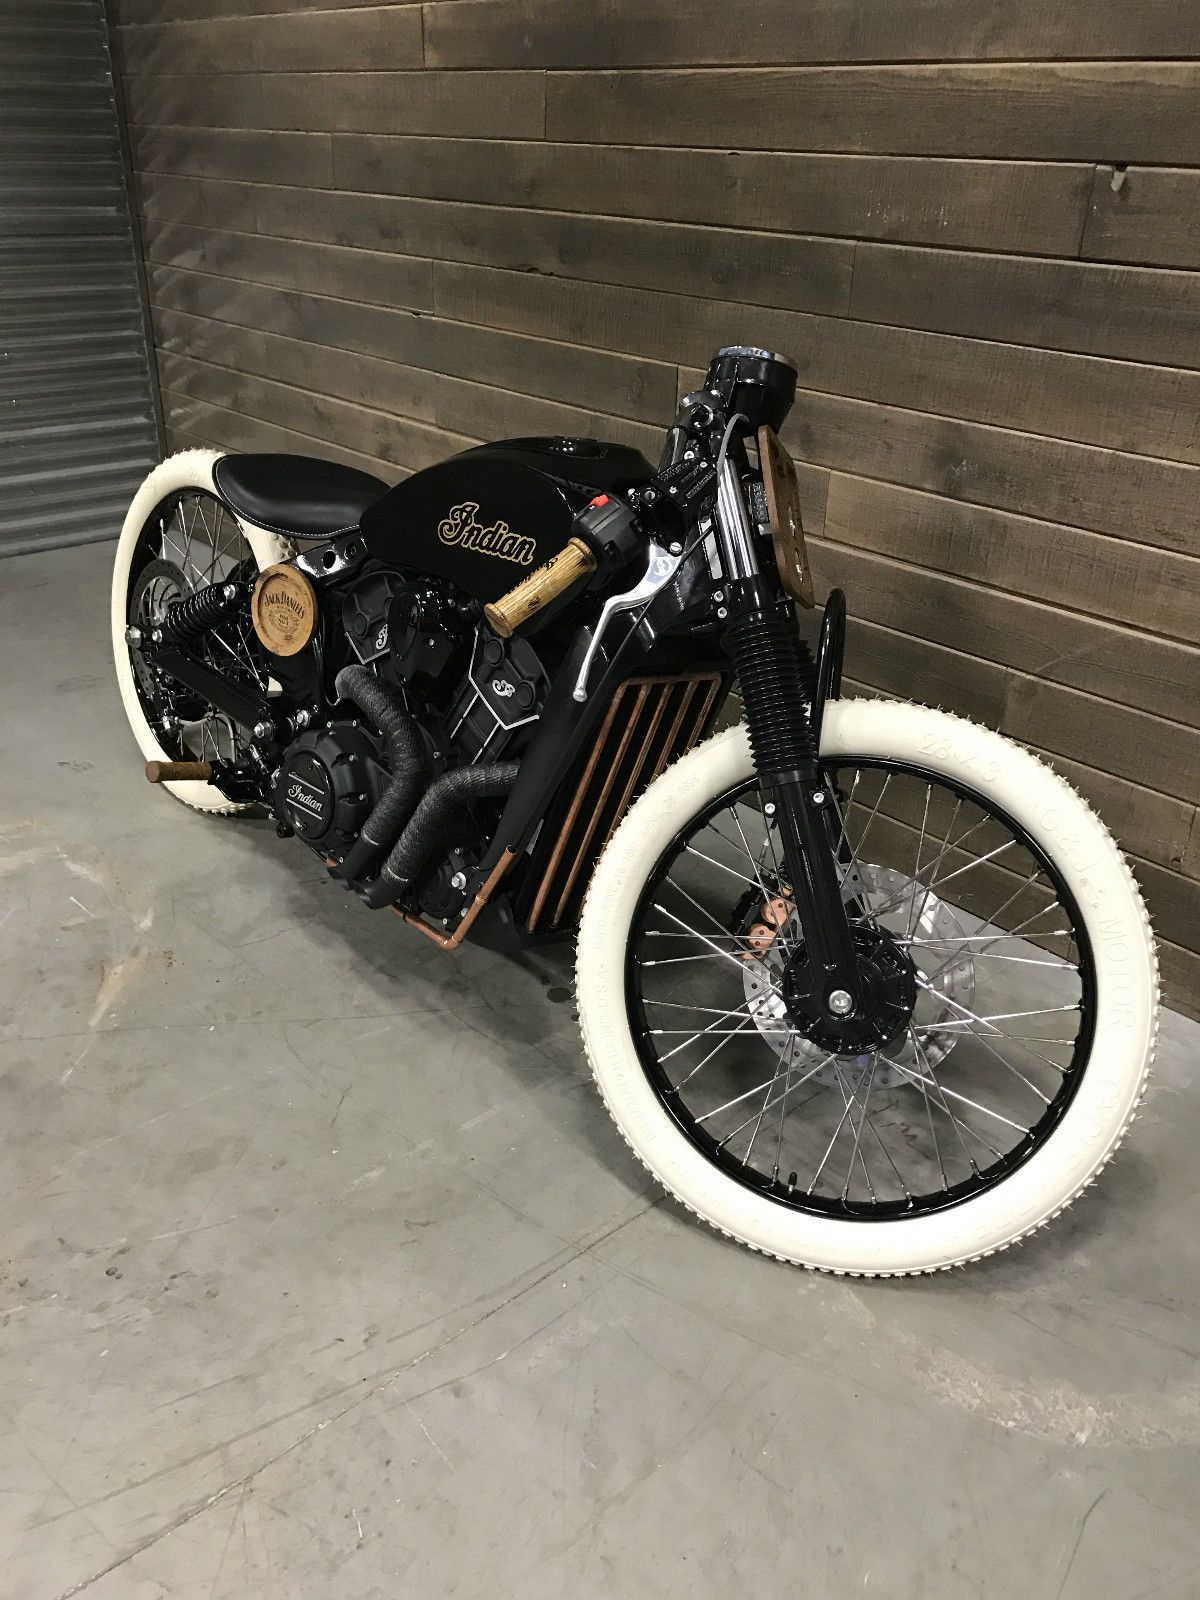 Cafe Racer - Engines, Fuel & Passions | motorcycle | Pinterest ...